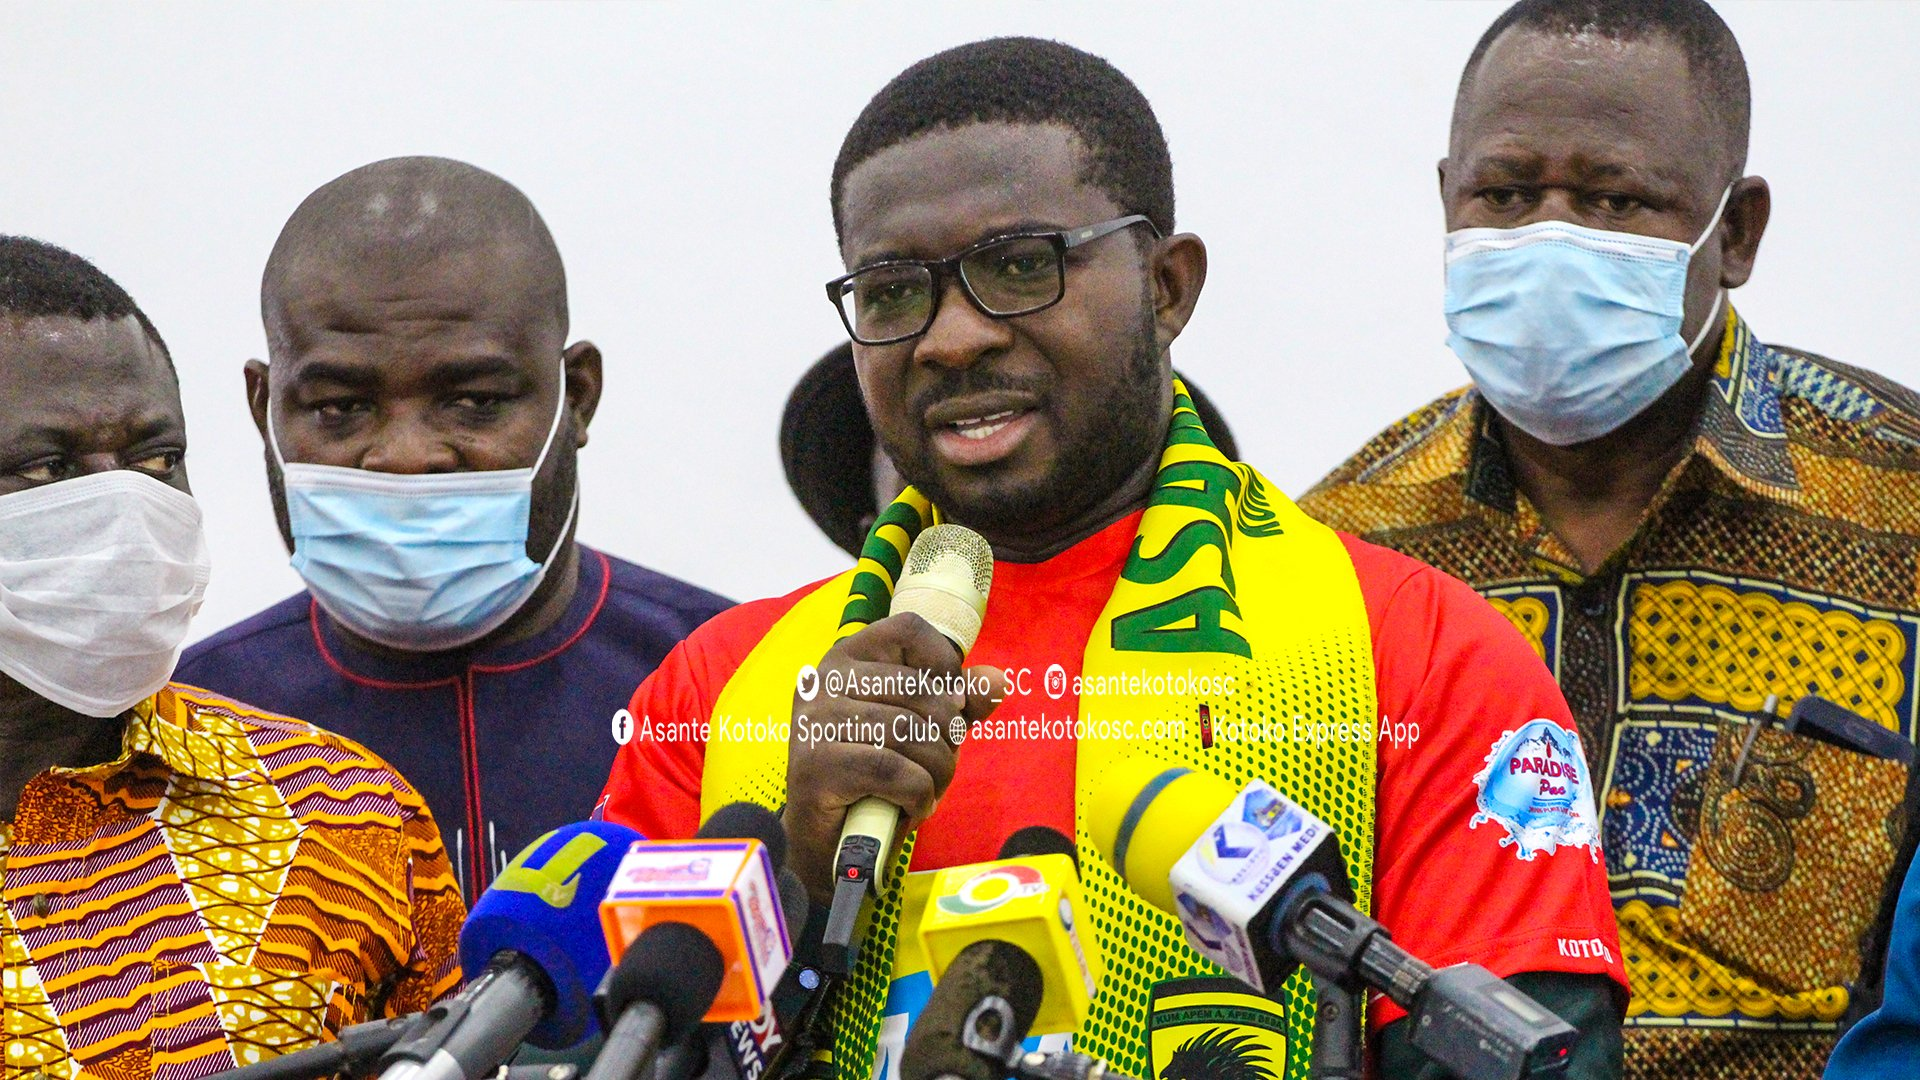 Asante Kotoko to hold talks with cooperate bodies for sponsorship